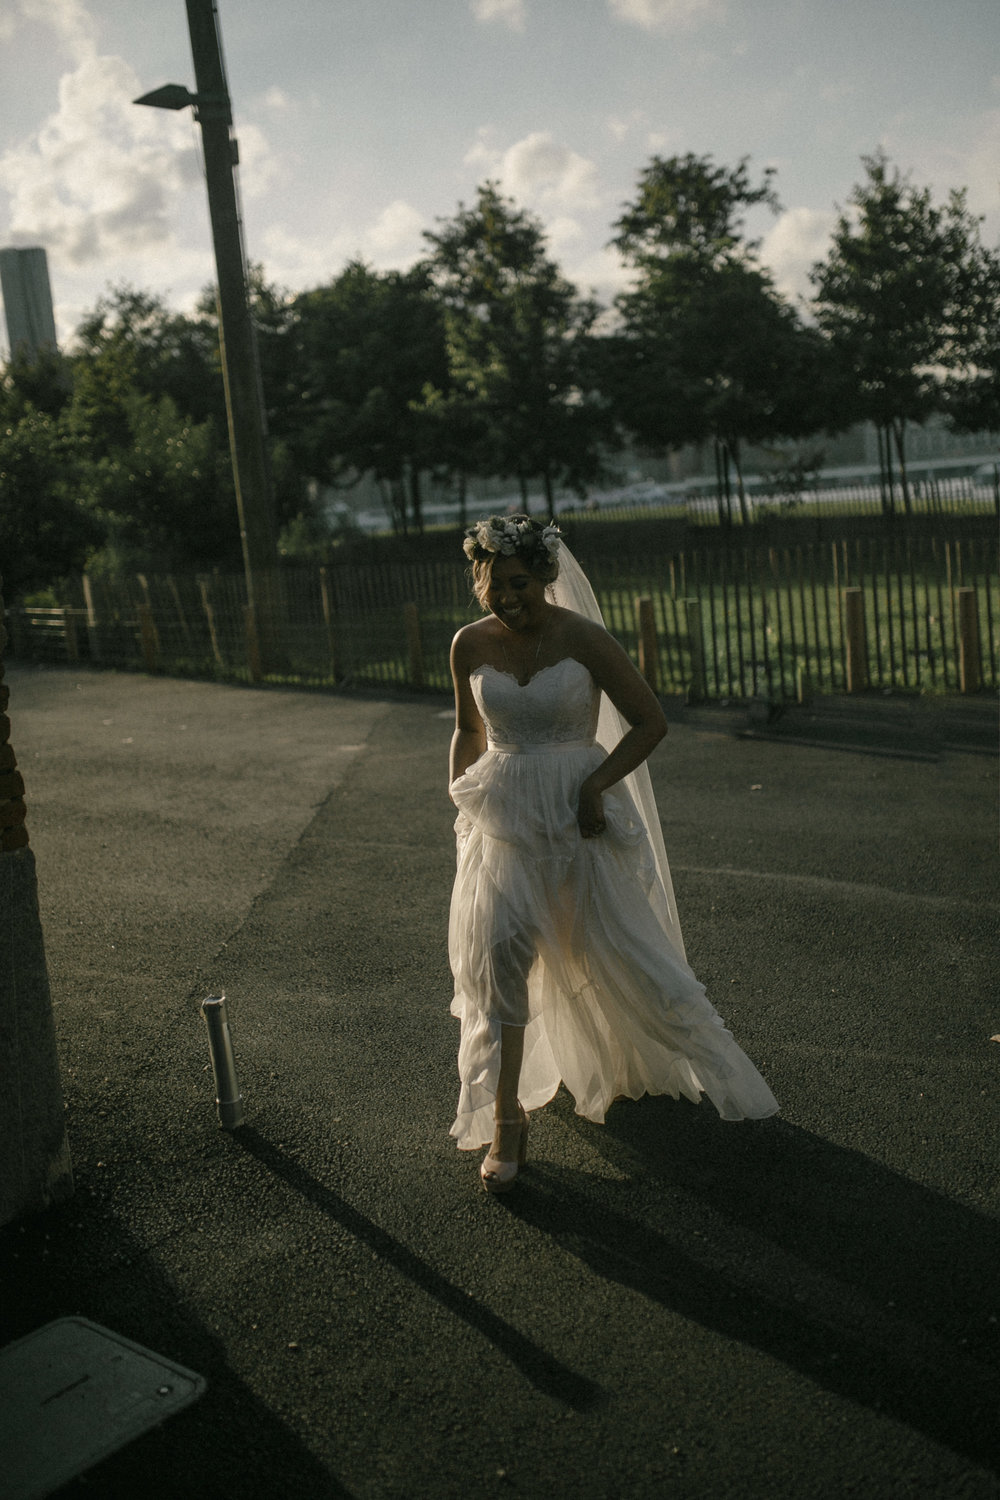 brooklyn_bridge_park_ny_wedding_alex_maxwell-52.jpg